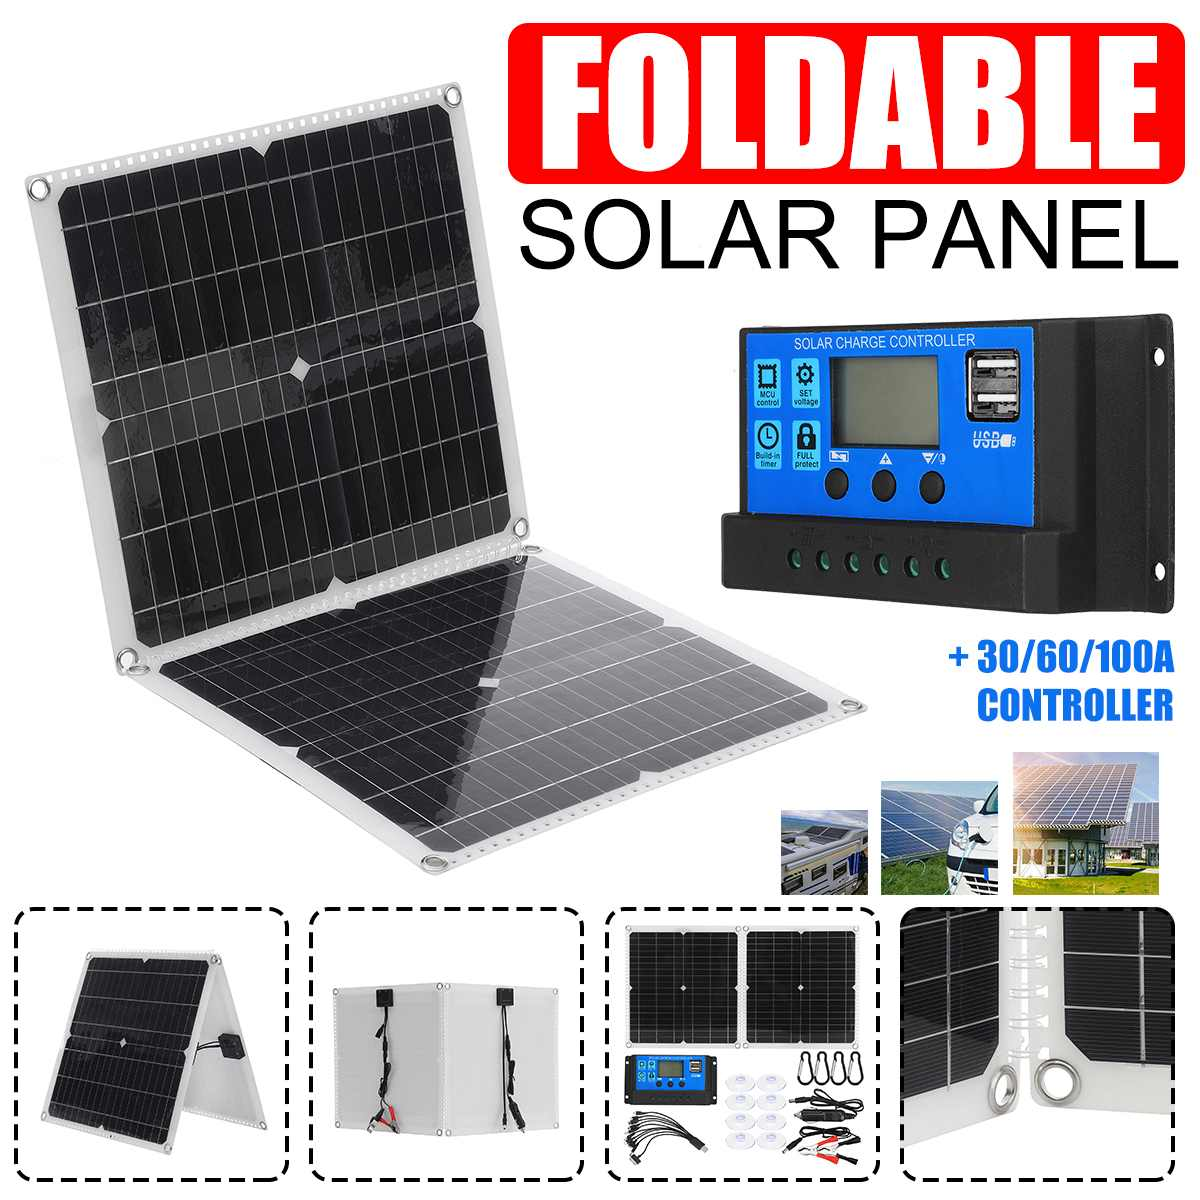 600W 300W Solar Panel Kit Complete 18V USB With 60/100A Controller Solar Cells for Car Yacht RV Boat Moblie Phone Battery Charge